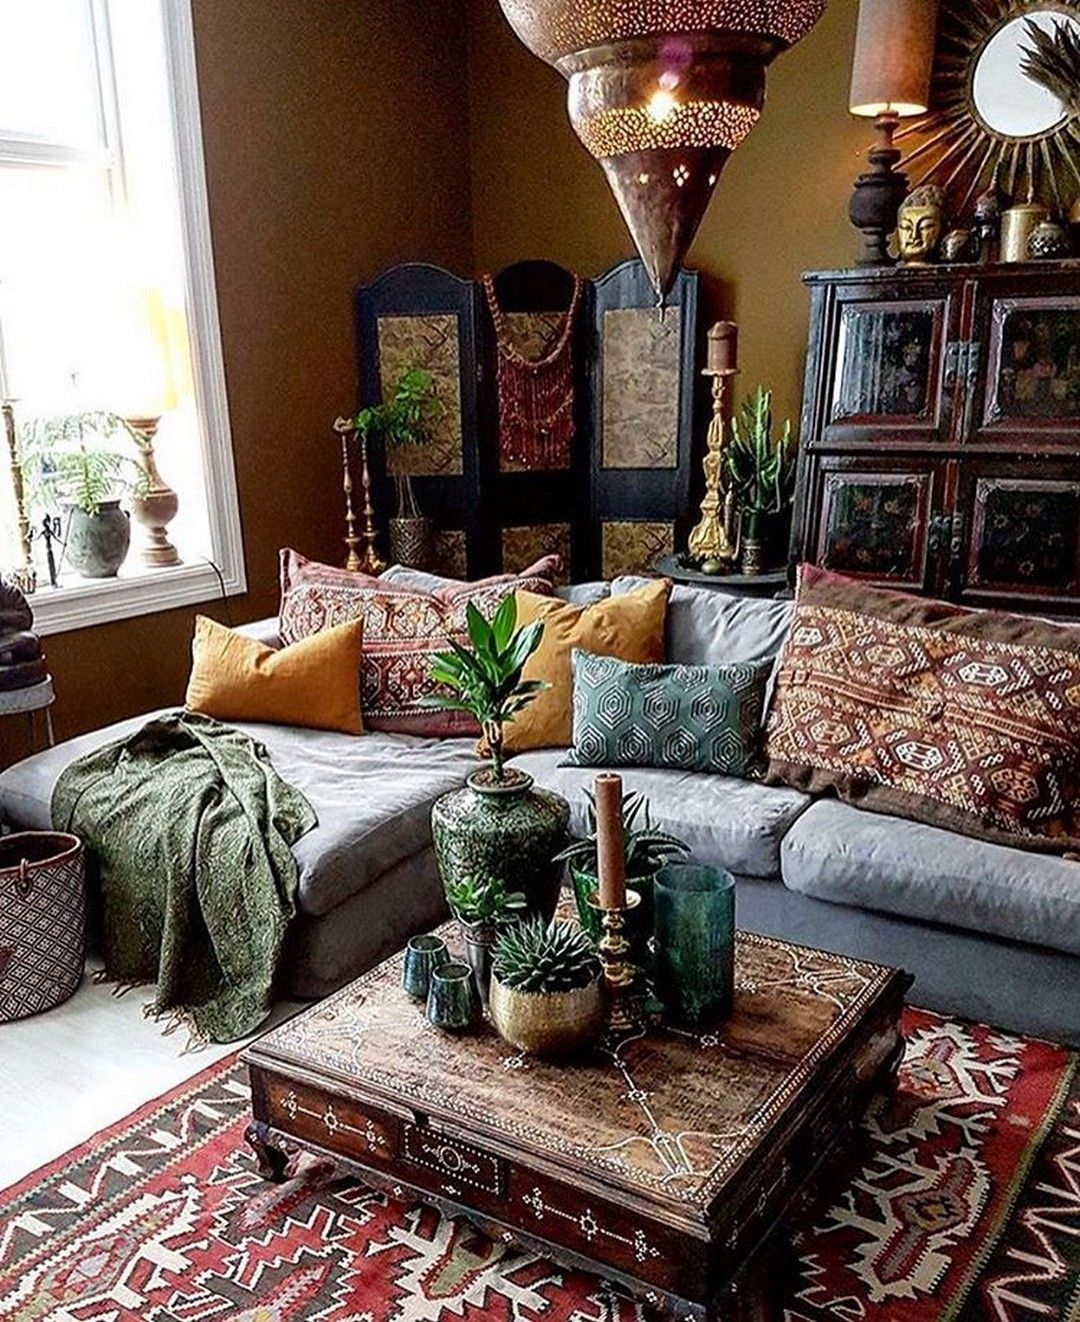 Bohemian Style Möbel 18 Diy Indoor Bohemian Decorating Ideas Diy Home Decor